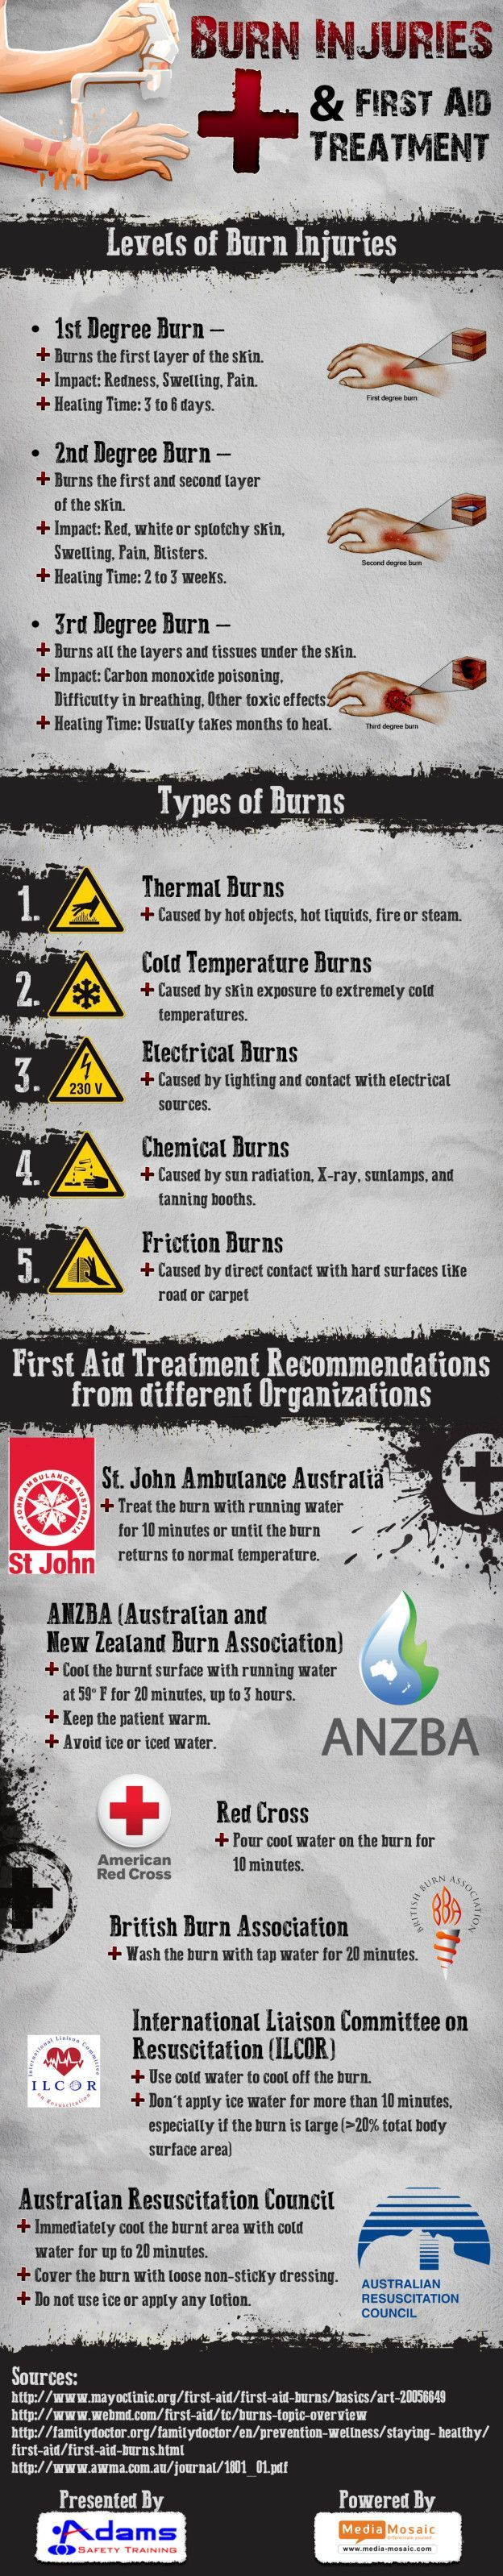 Burn injuries are the most common household & work sites injuries. This Infographic is about #firstaid procedures for burn injuries recommended by health & safety training providers.